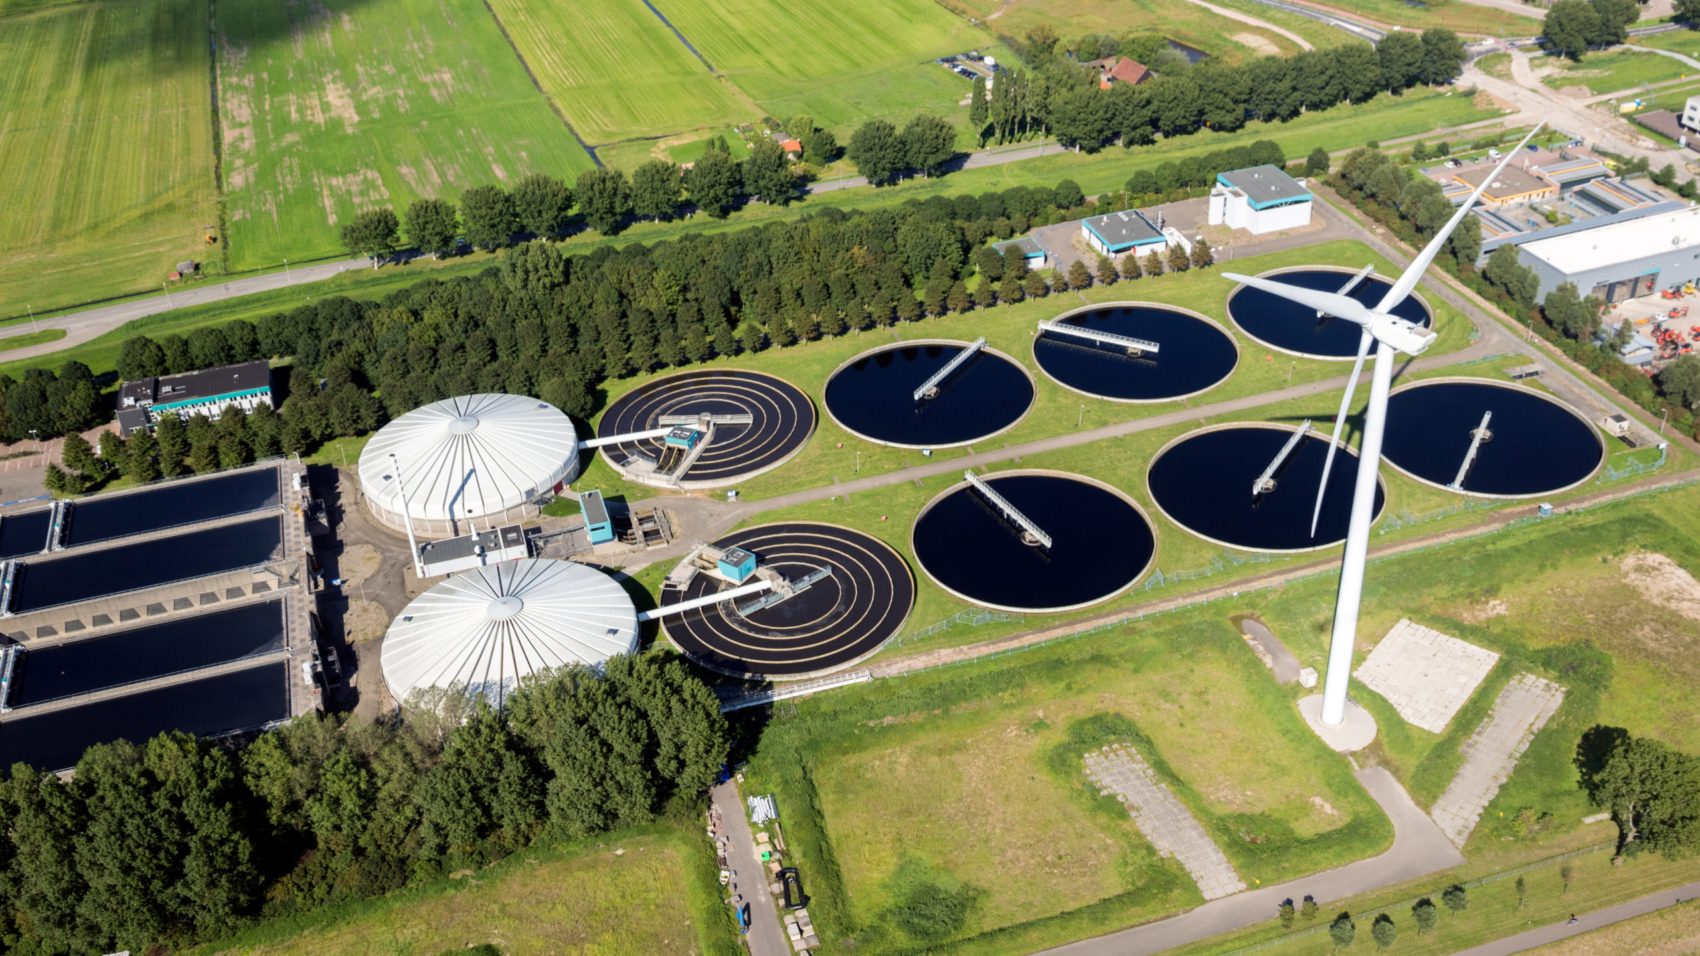 ROTTERDAM, THE NETERLANDS - Aerial view of a water treatment plant in the Port of Rotterdam.